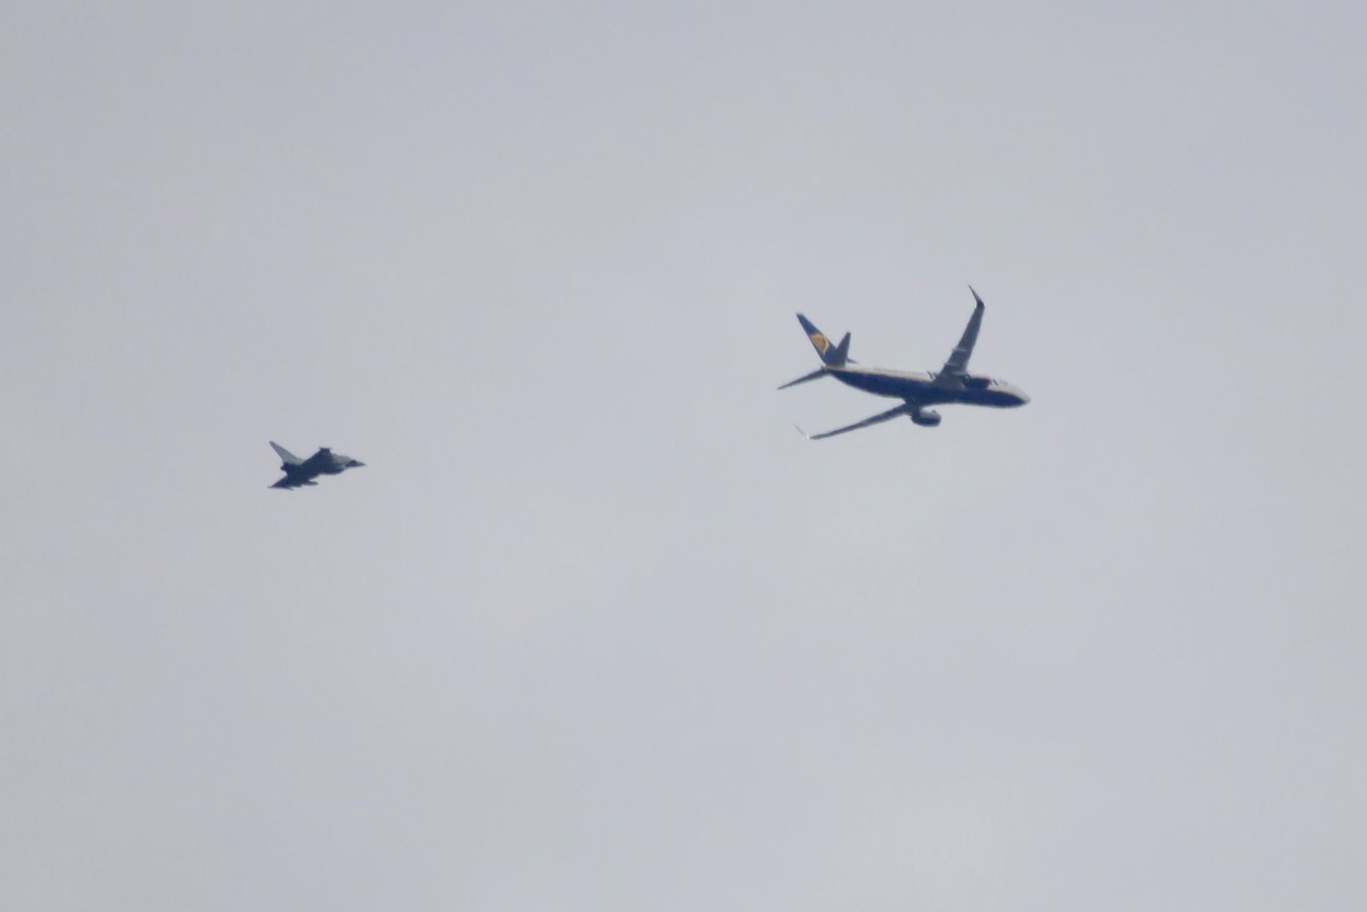 Ryanair flight escorted by fighter jets to London airport after 'hoax'